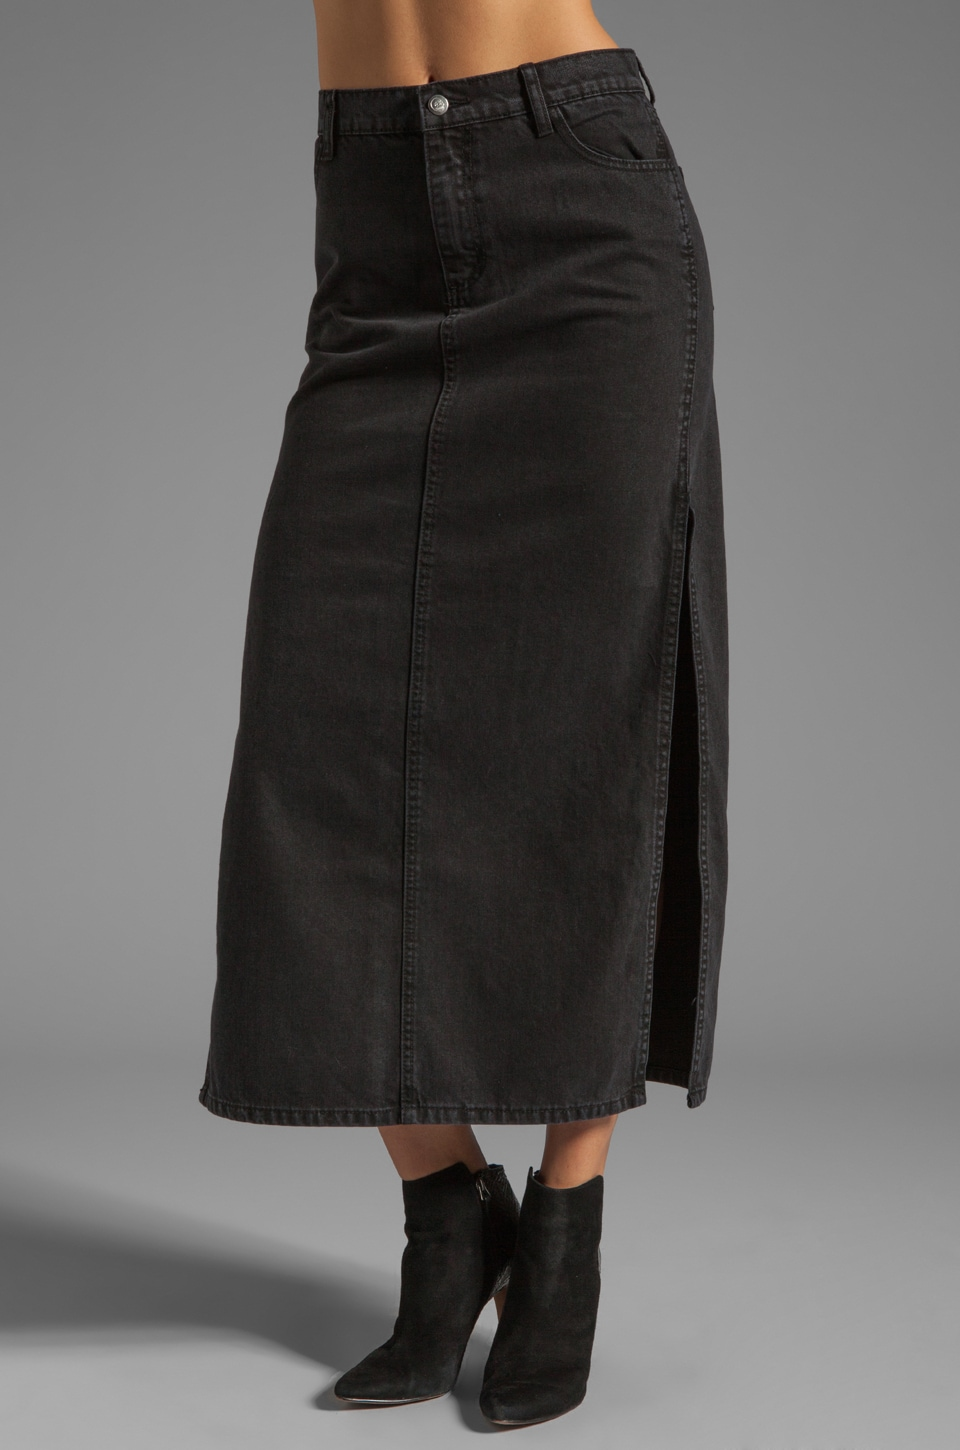 Cheap Monday Avery Skirt in Washed Black